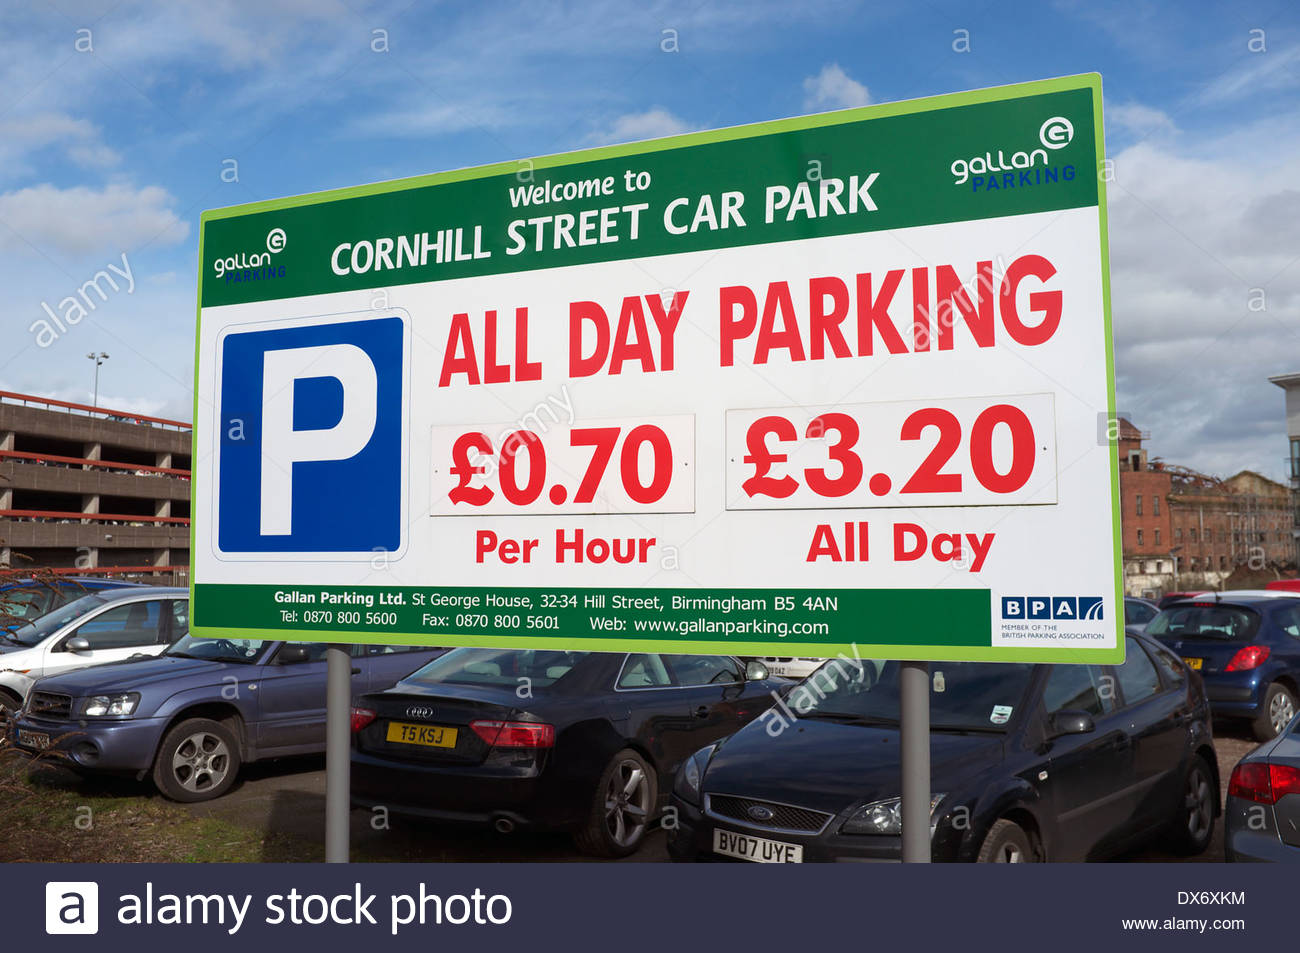 All Day Parking £3.20, in Wolverhampton, West Midlands, UK. - Stock Image